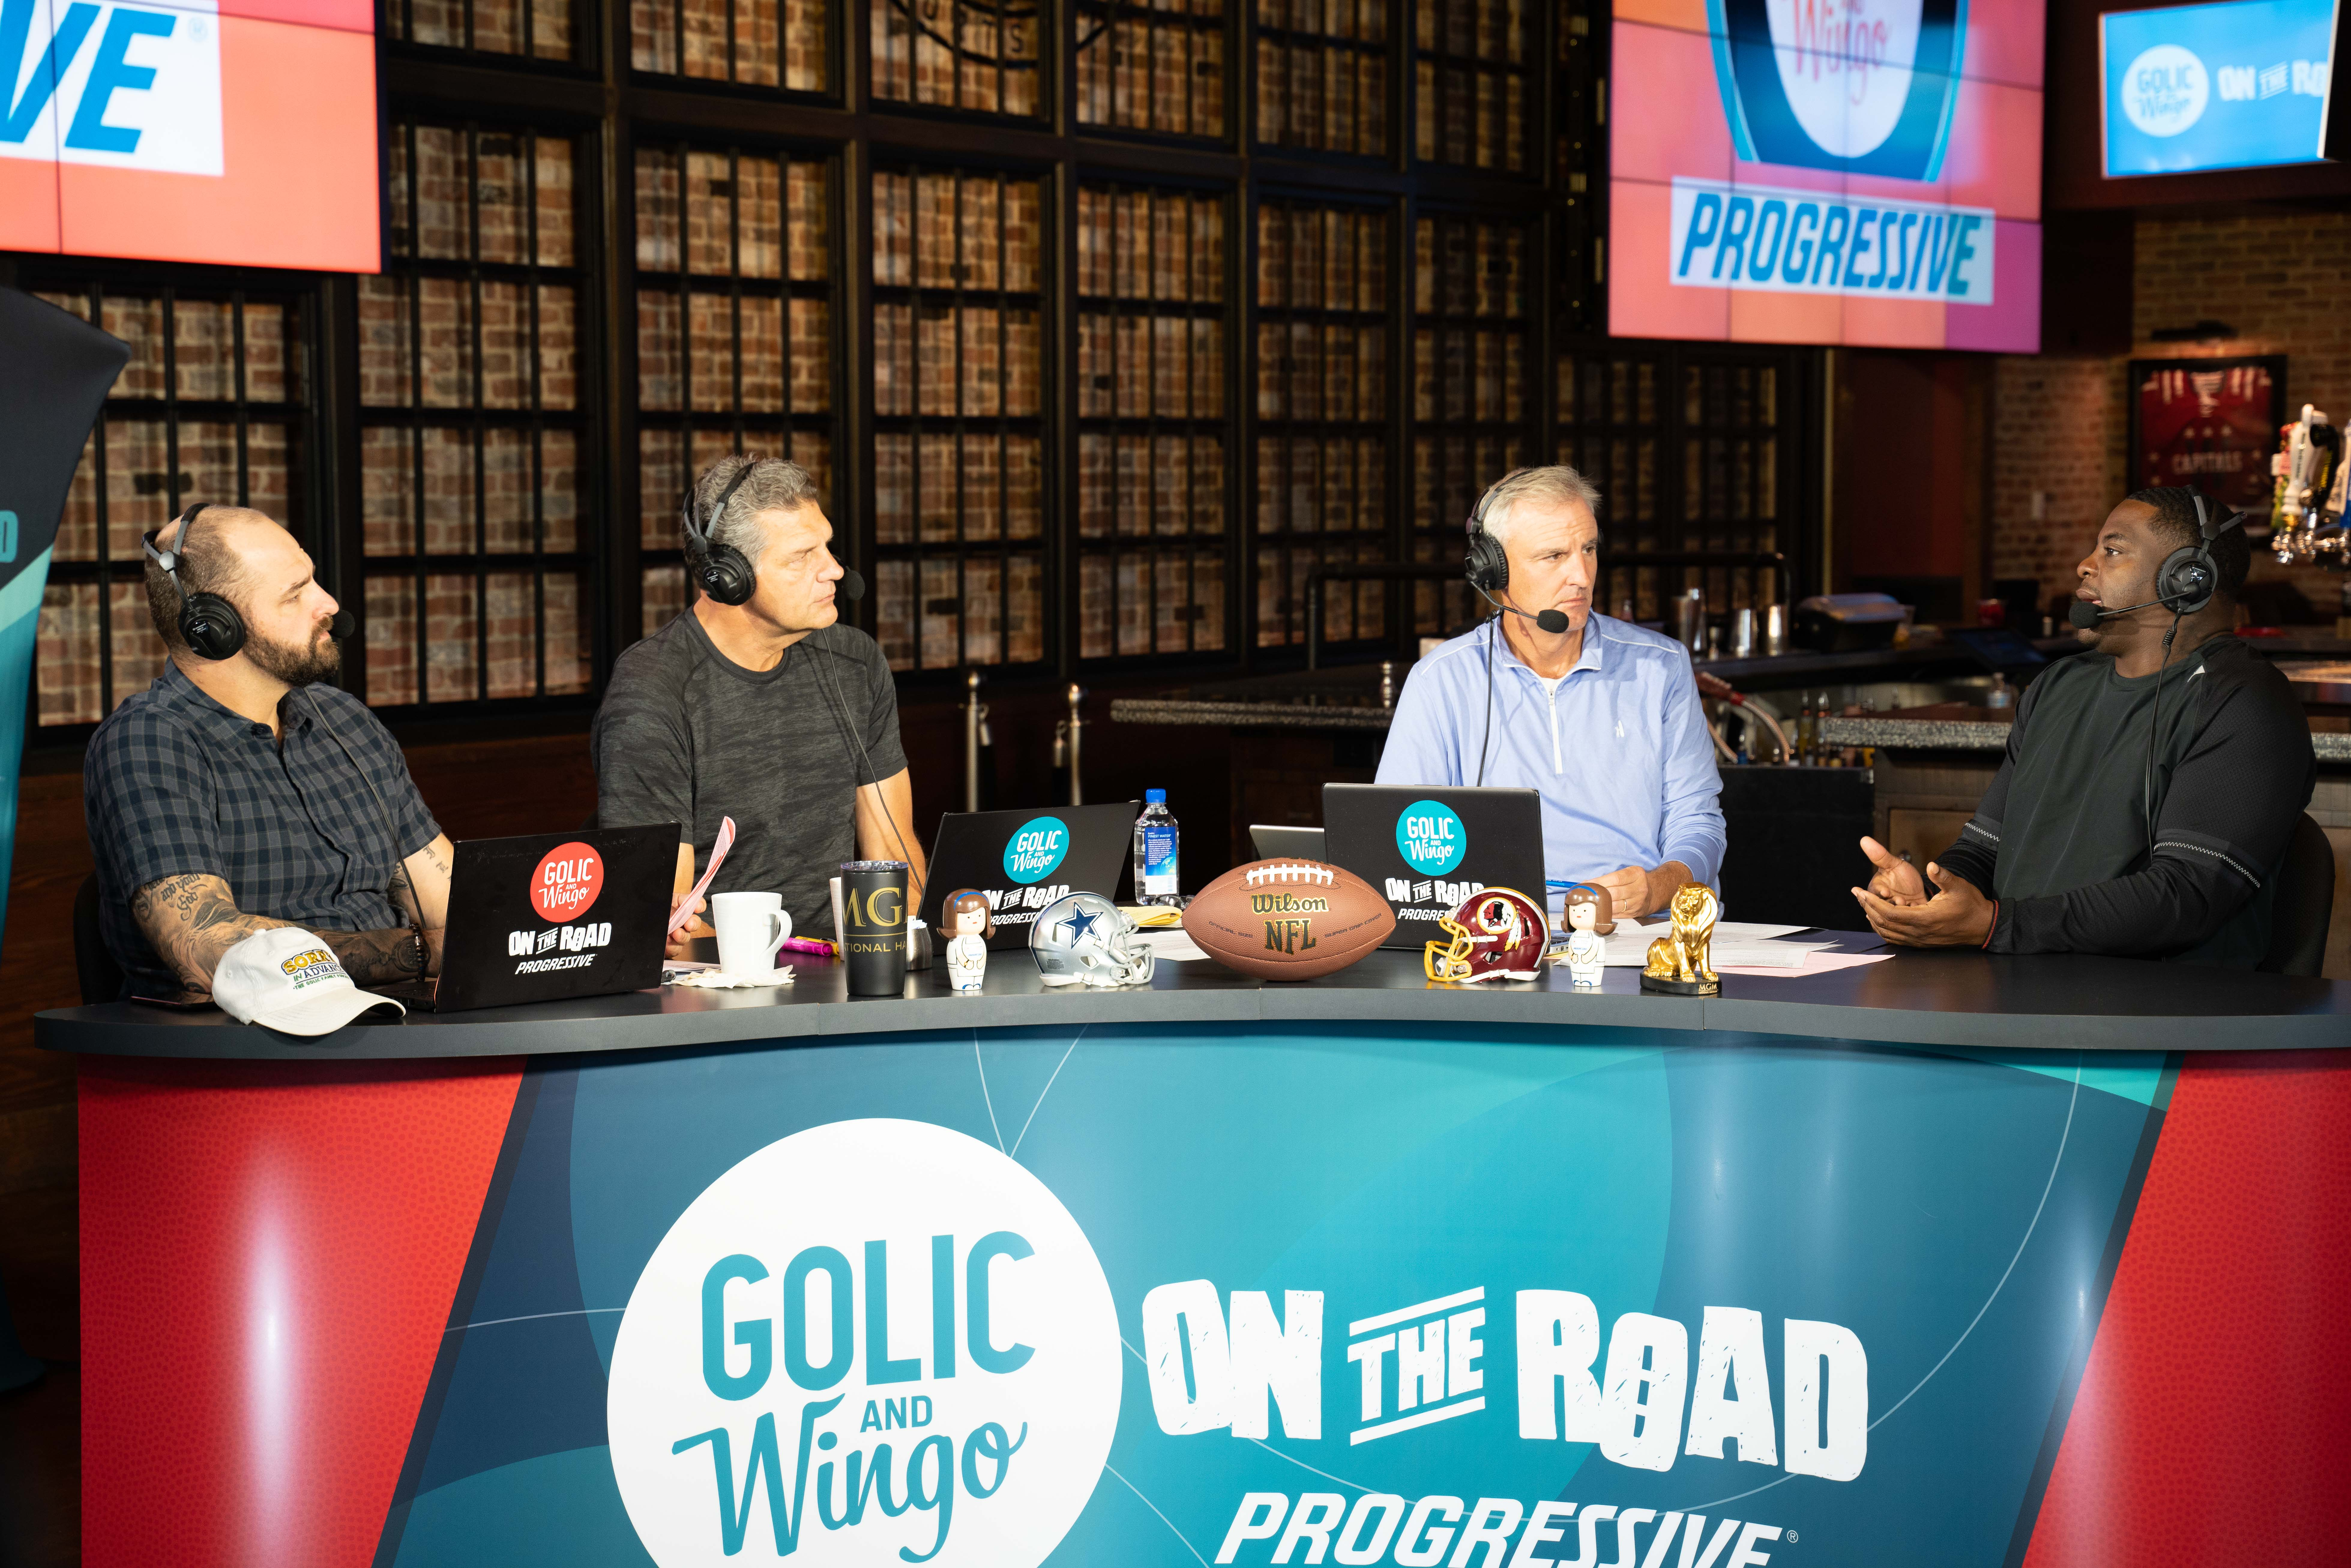 Golic and Wingo Live Broadcast from MGM National Harbor